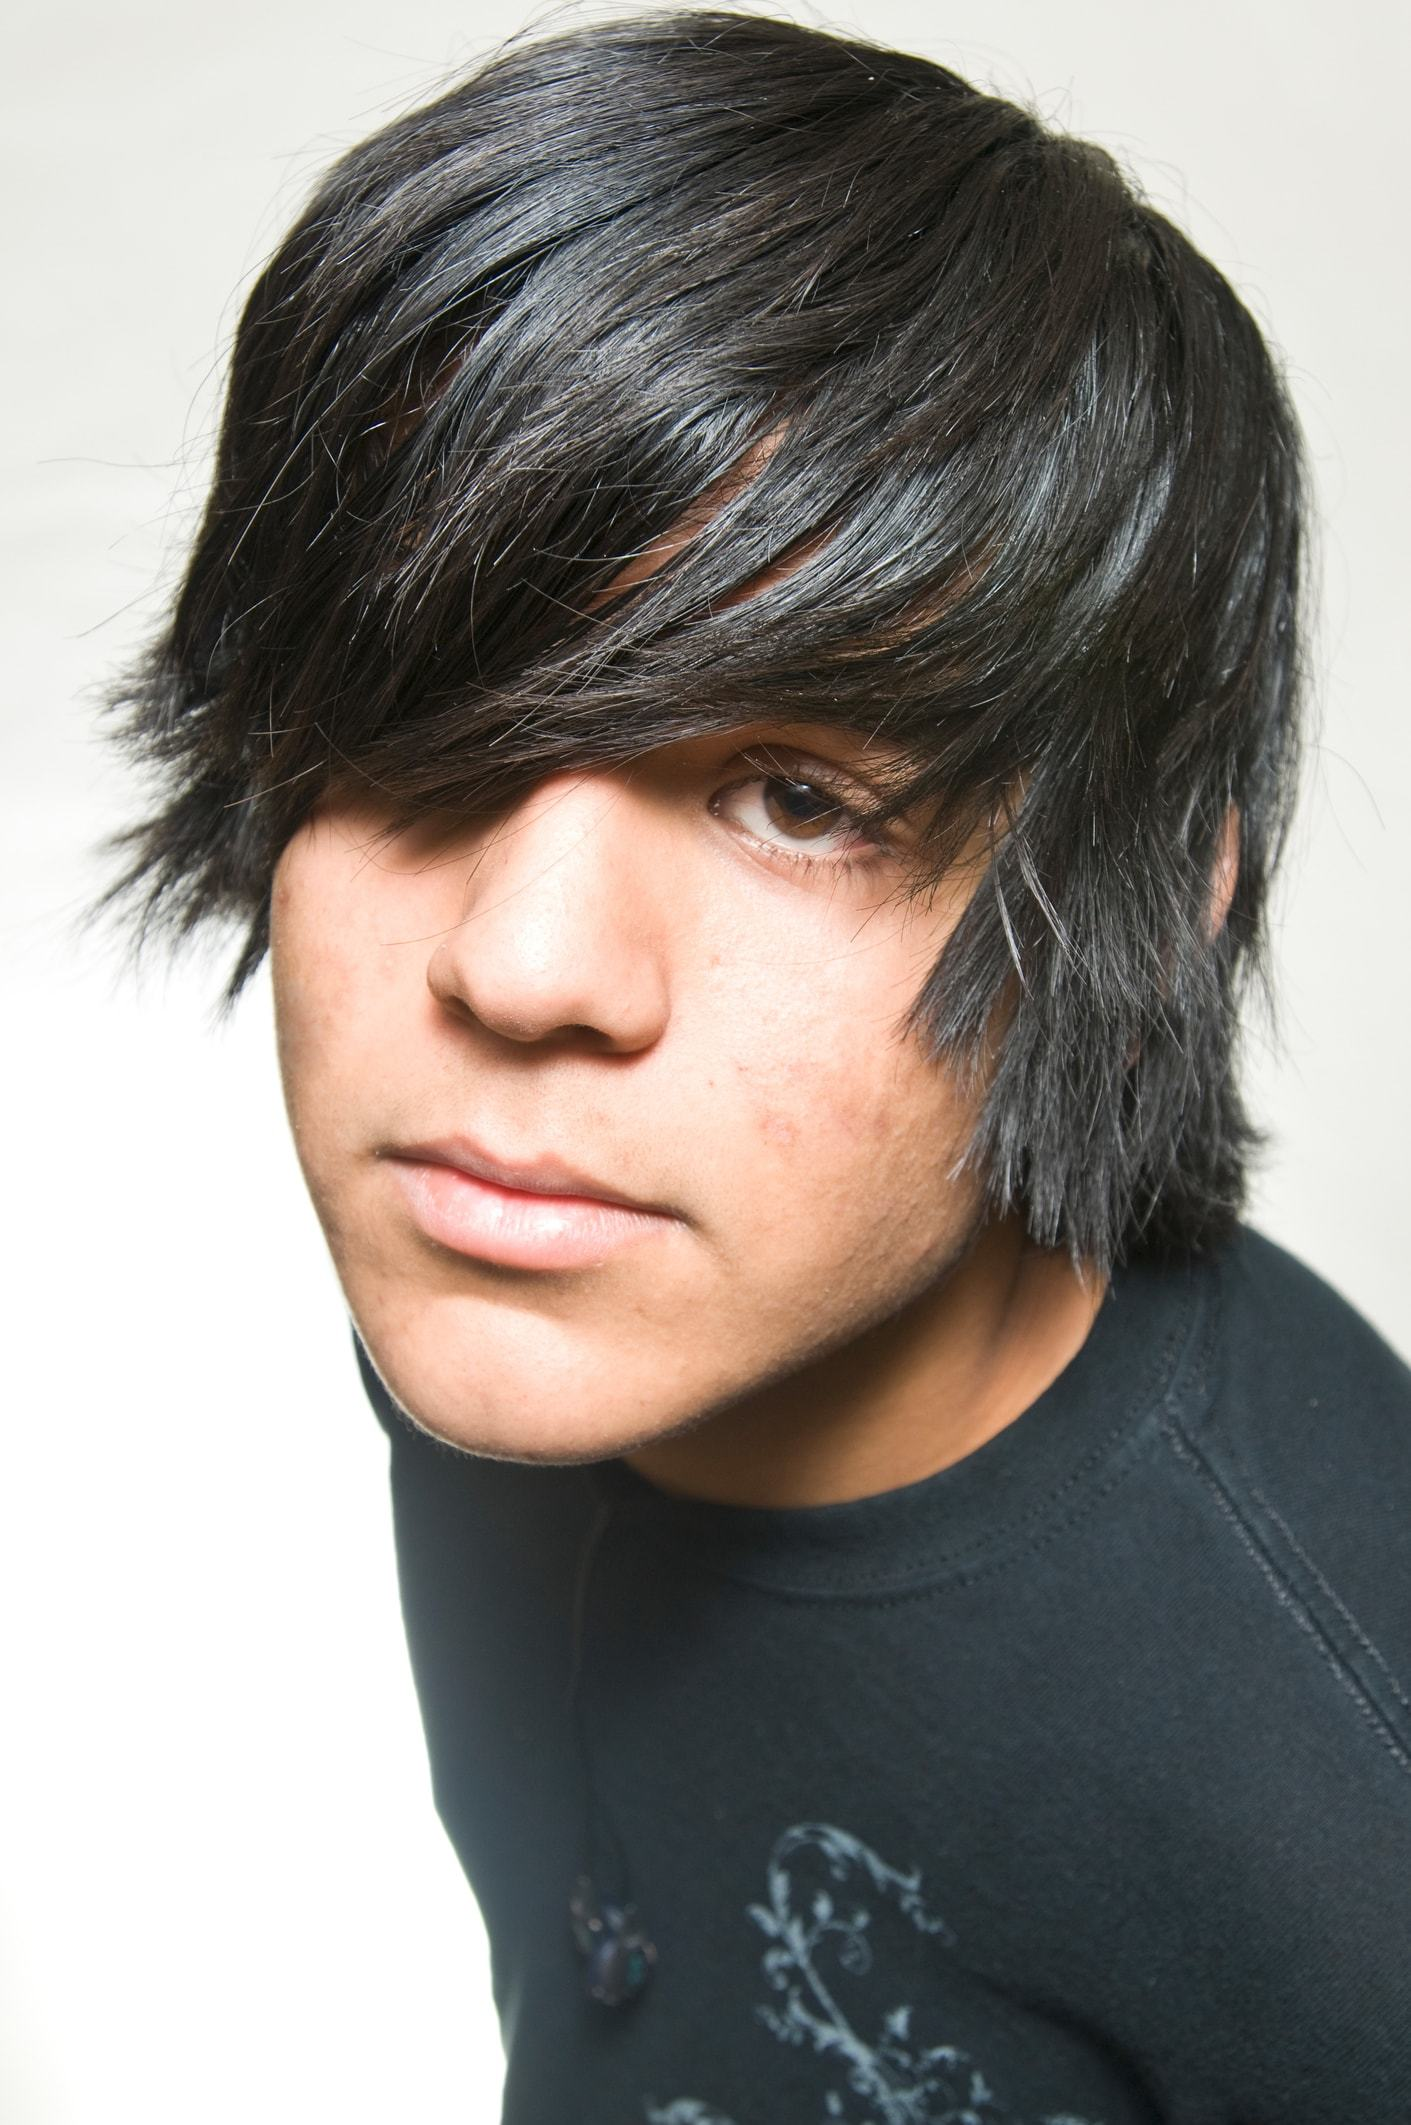 Emo Hairstyles For Guys Flattering Ways To Rock A Punk Look